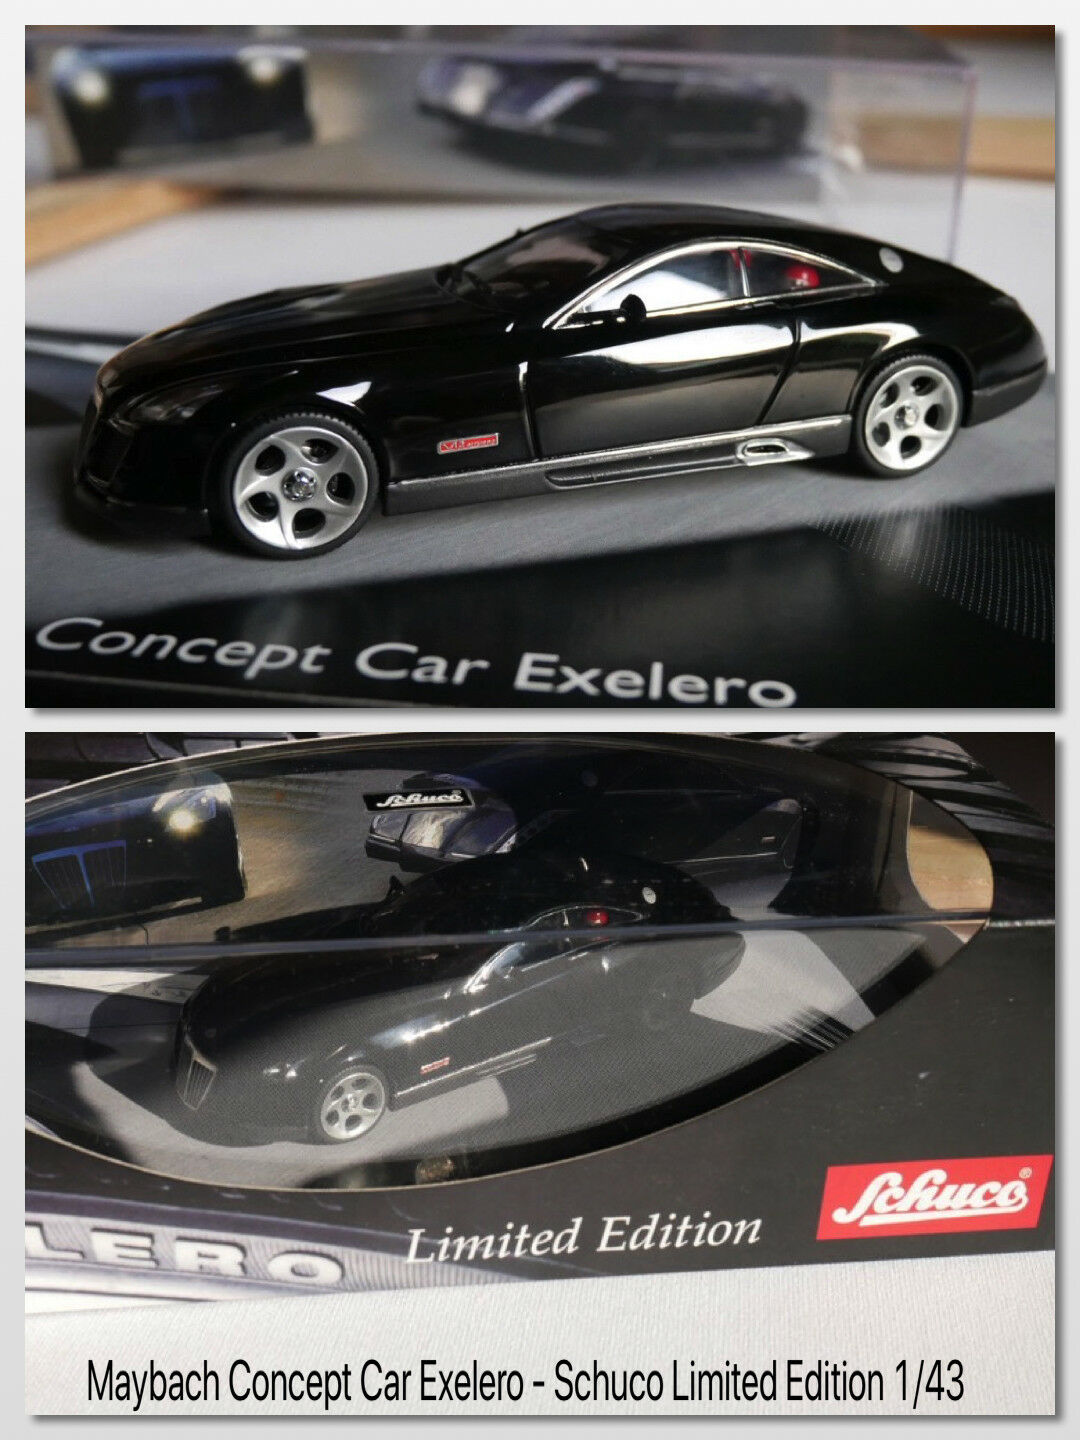 Maybach concept car exelero-schuco limited edition 1 43